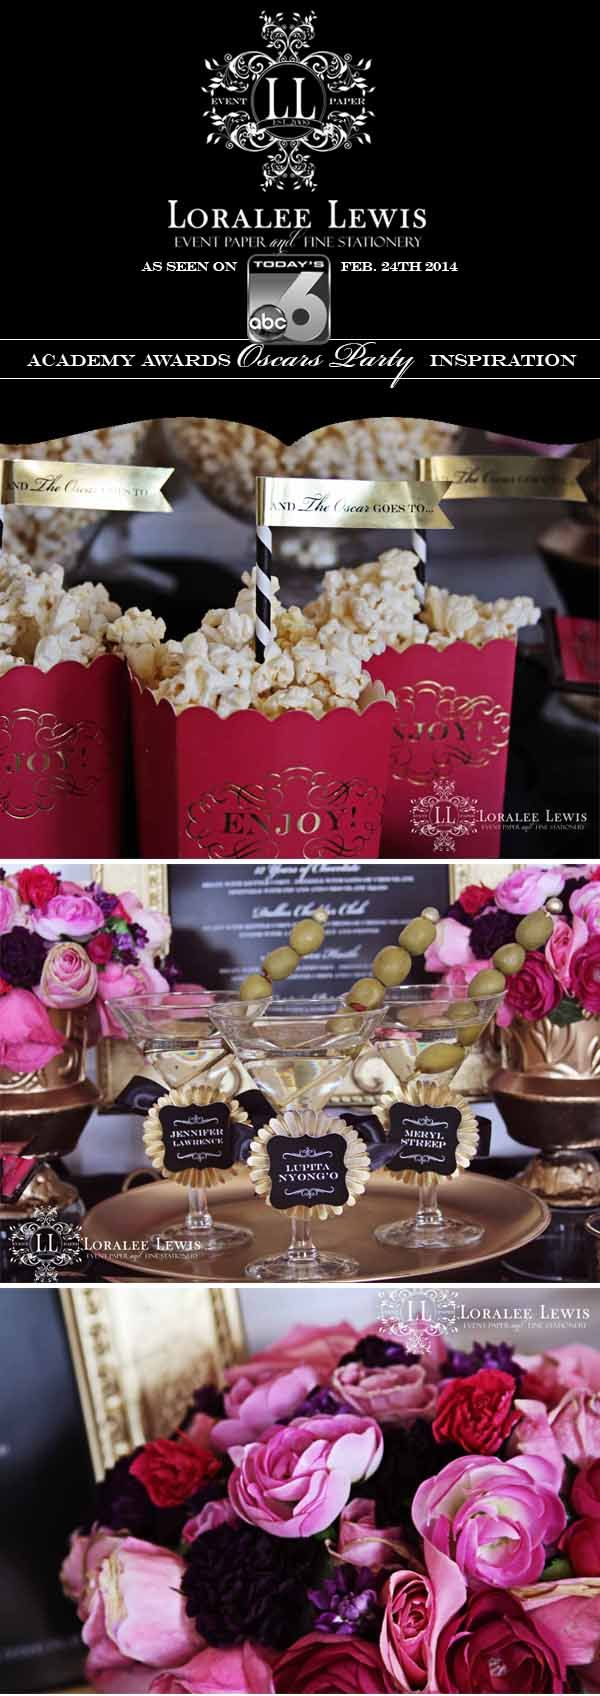 Oscars Party Inspiration with Loralee Lewis, www.LoraleeLewis.com,  as seen on ABC Channel 6